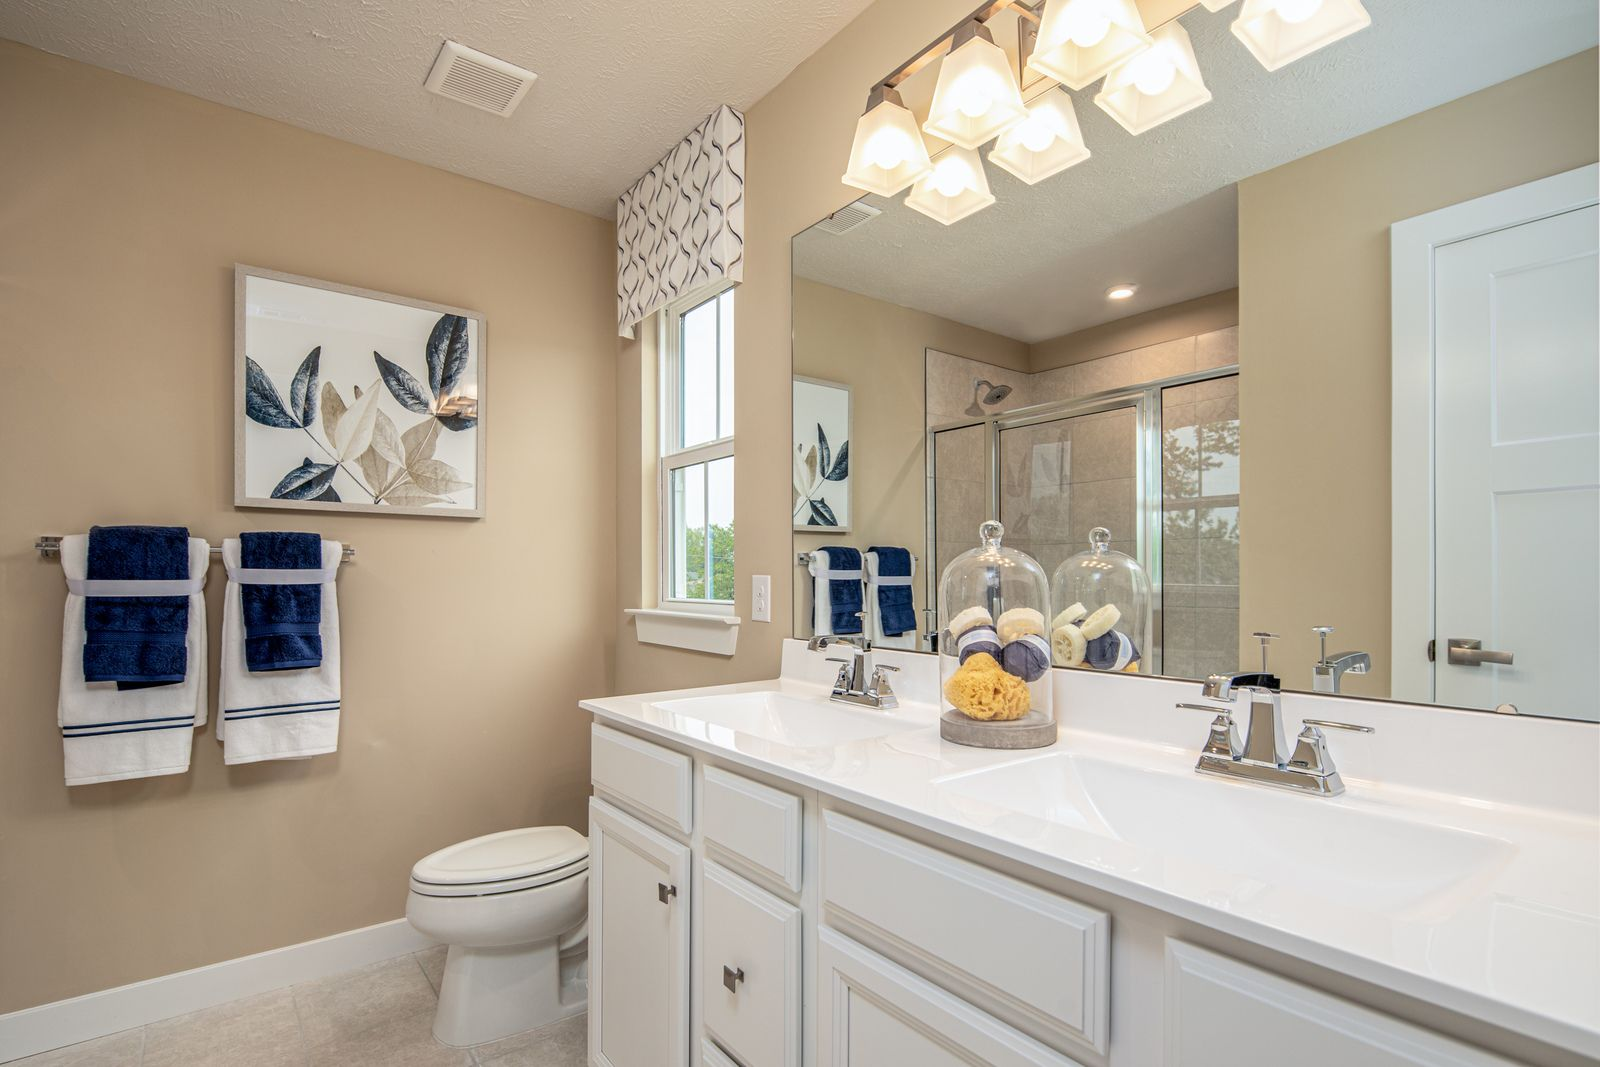 Bathroom featured in the Allegheny By Ryan Homes in Charlotte, NC